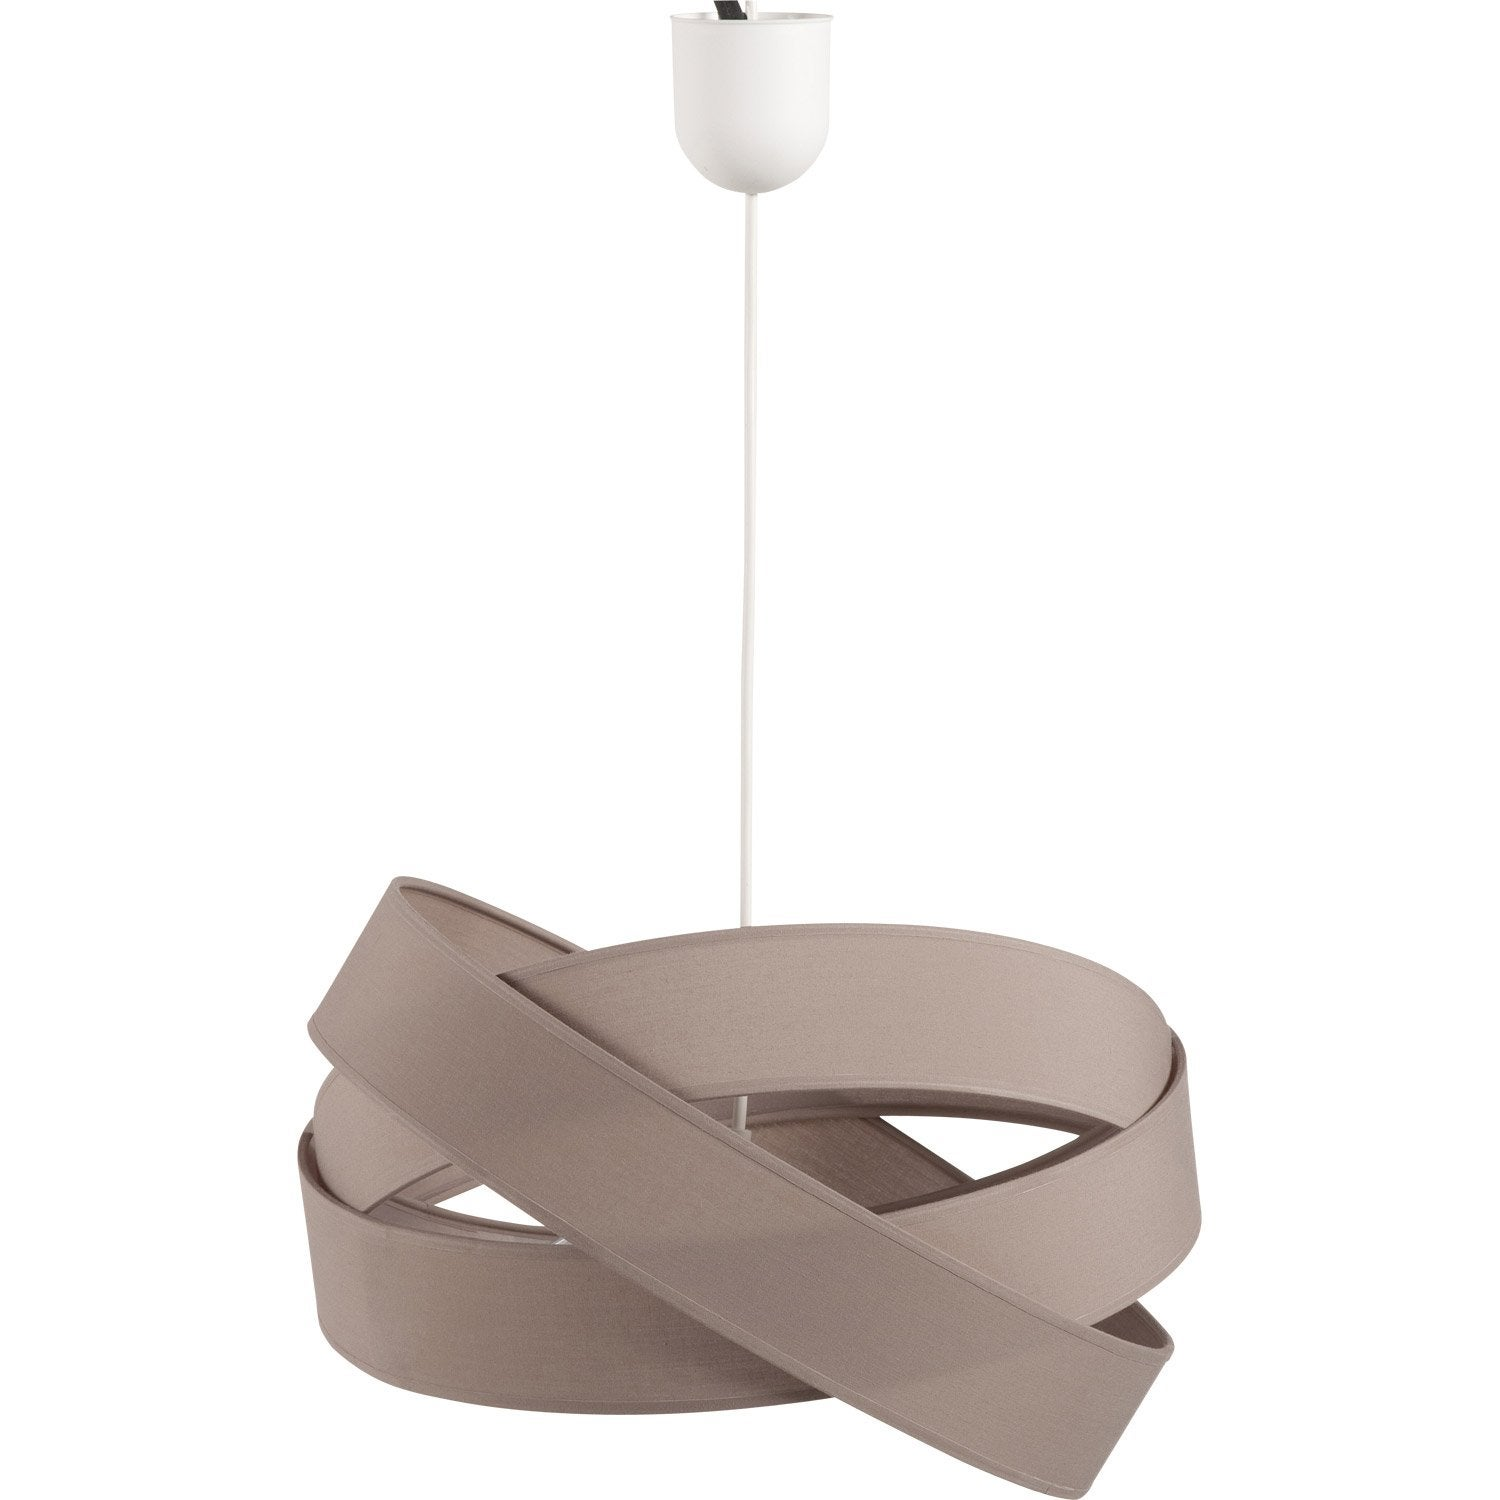 Suspension, e27 design Bijou PM coton brun taupe 1 x 60 W METROPOLIGHT